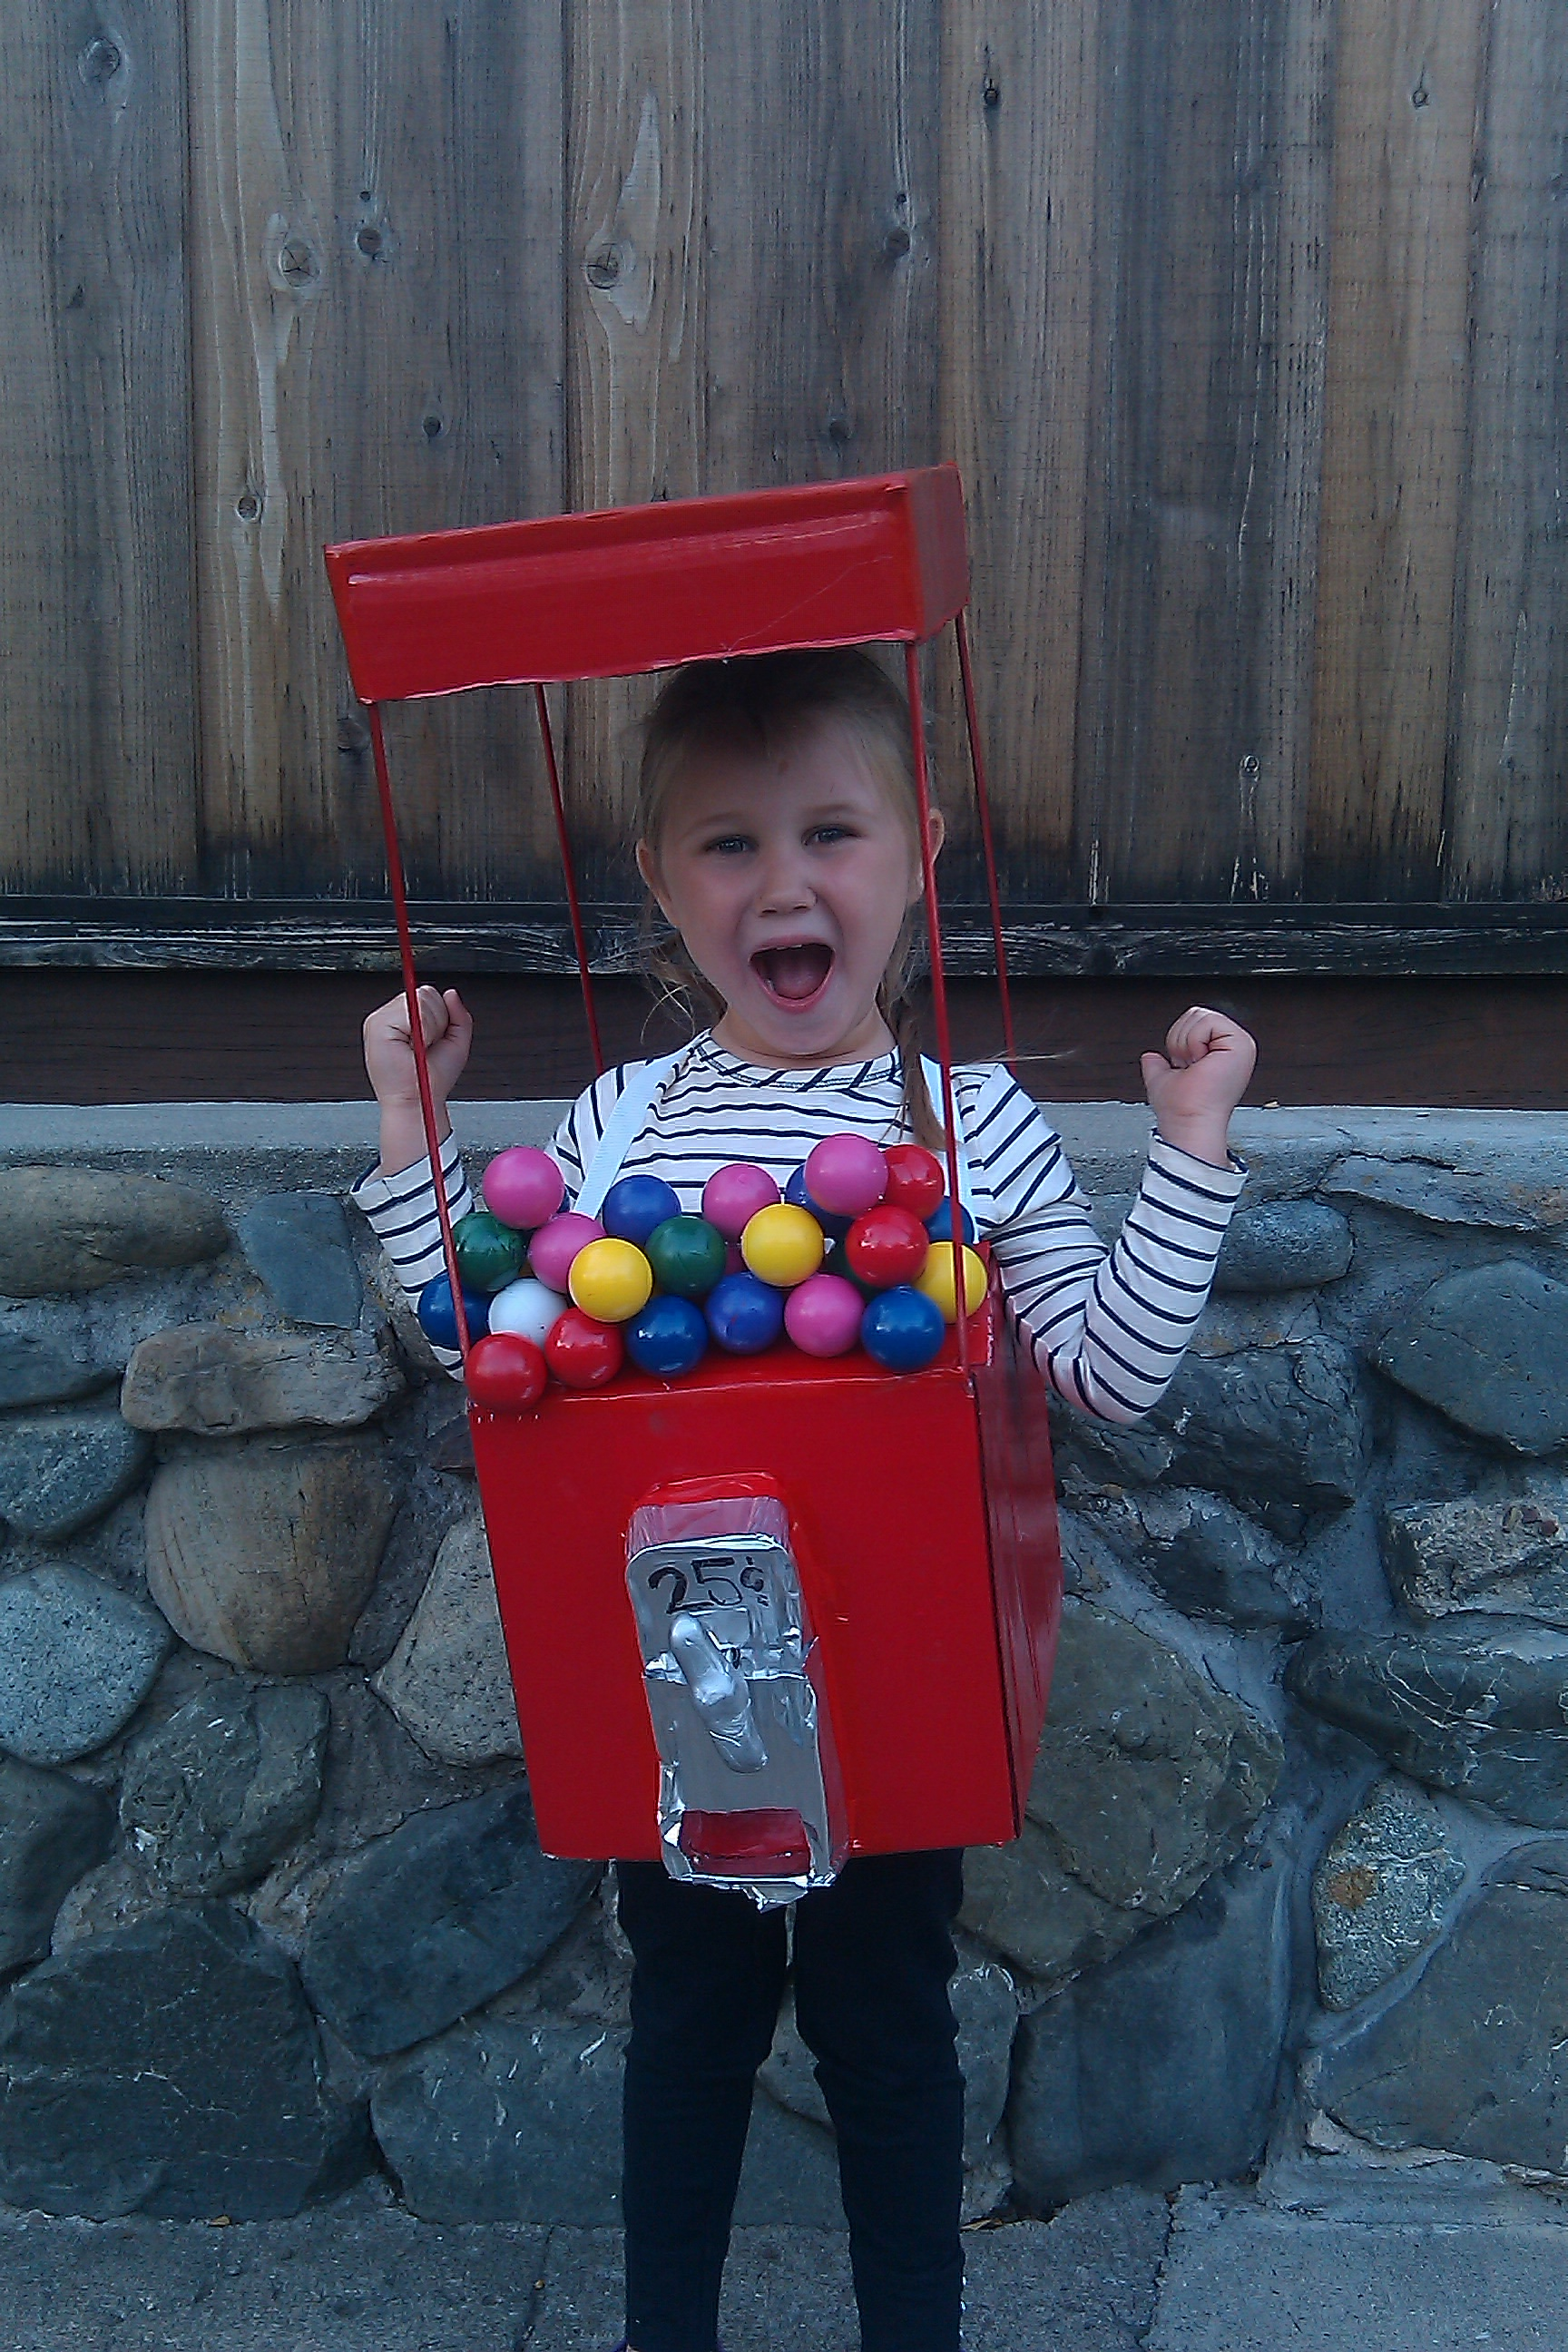 Gumball Machine Costume that Actually Dispenses Real Gumballs